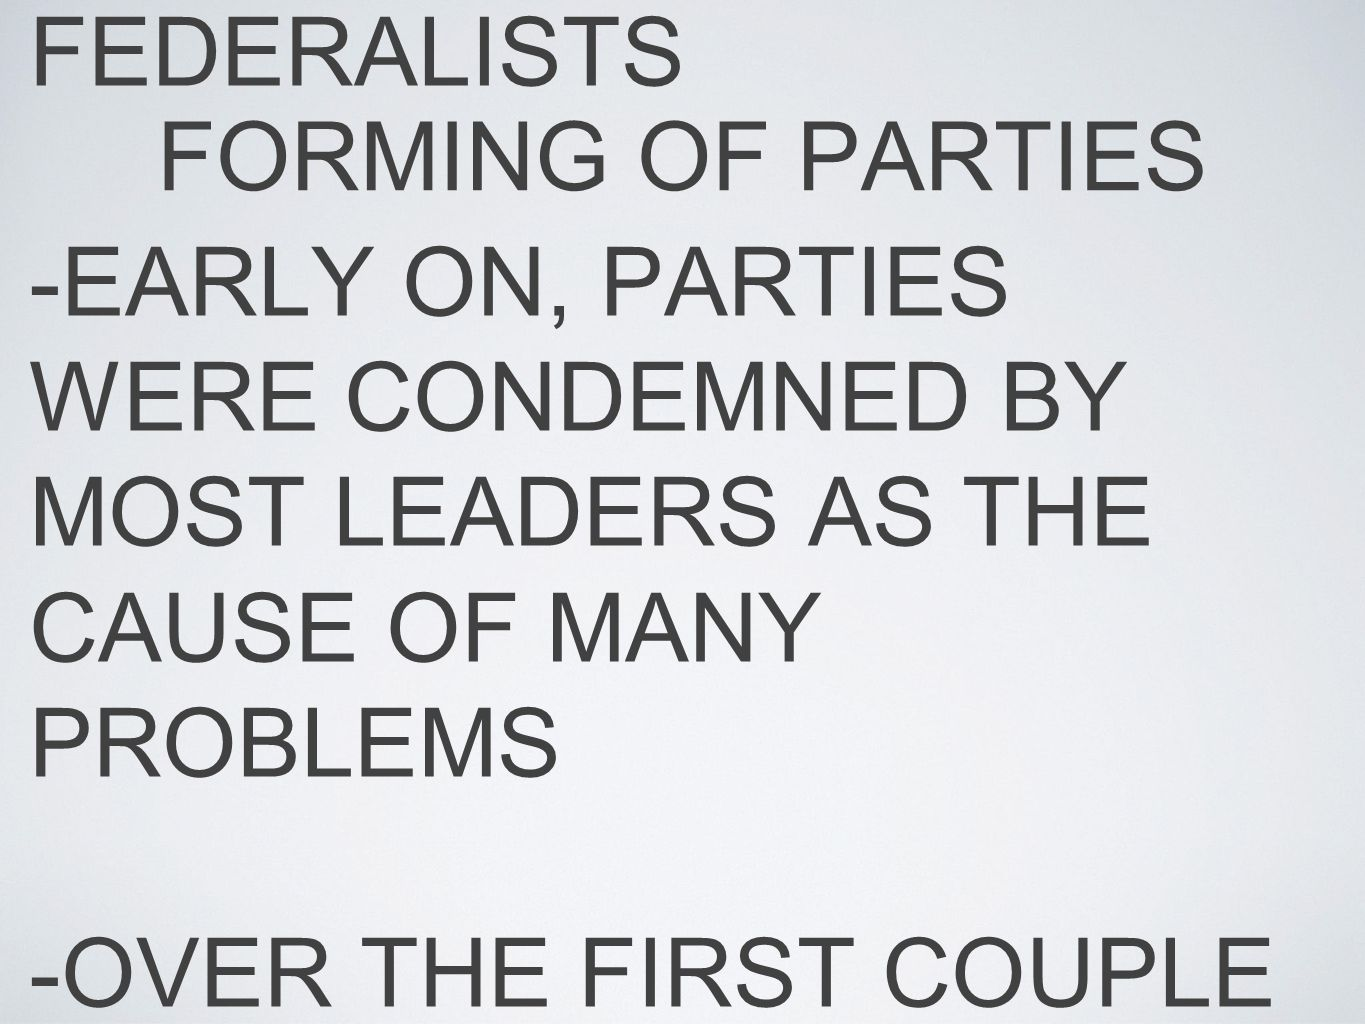 FORMING OF PARTIES -PARTIES IN THE US TENDED TO EVOLVE SLOWLY OVER TIME.